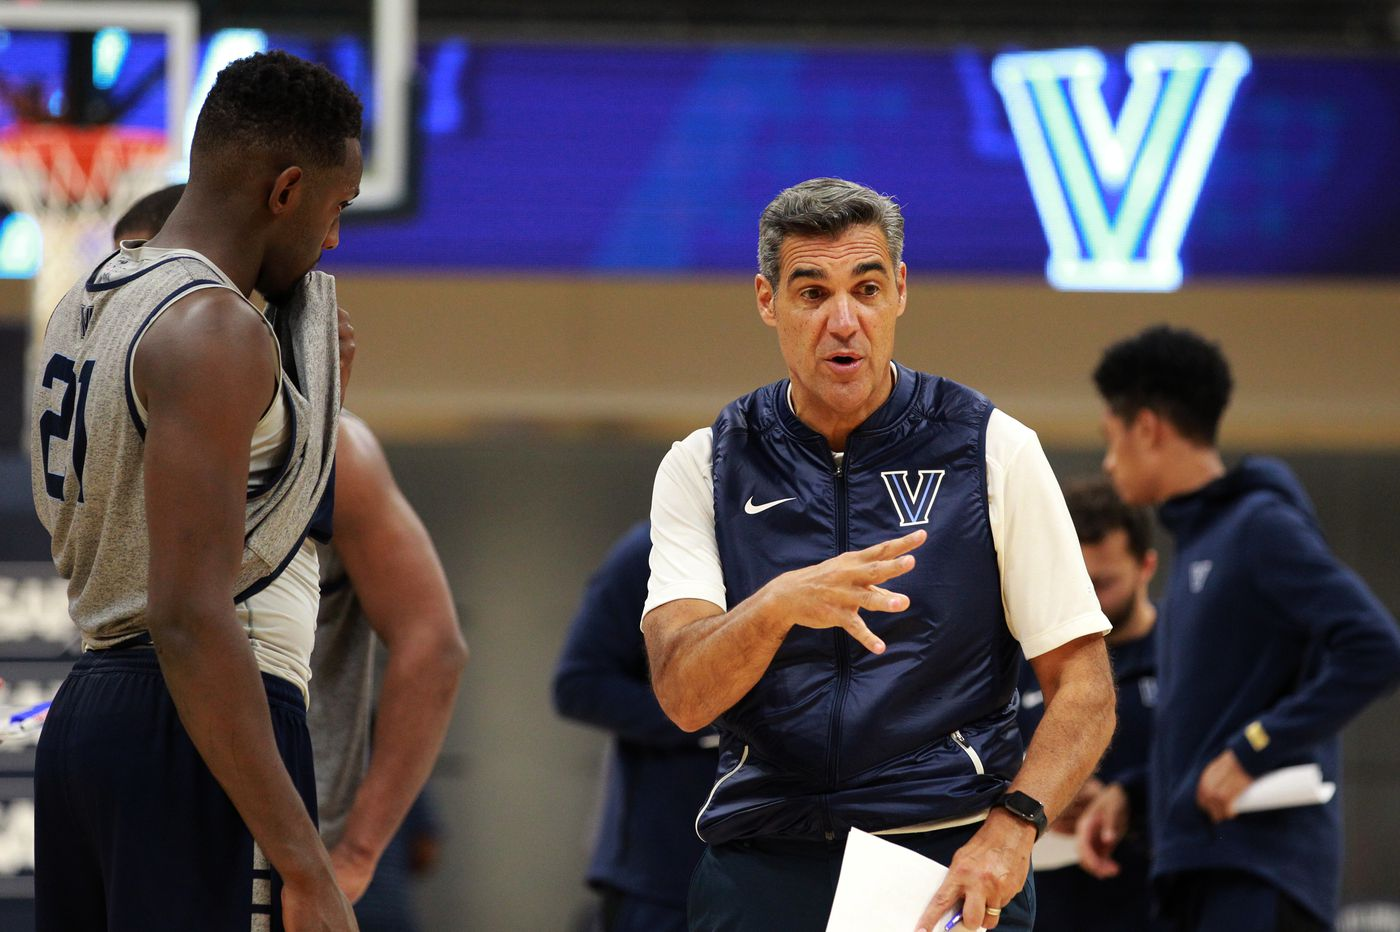 Villanova is No. 10 in the AP preseason college basketball rankings